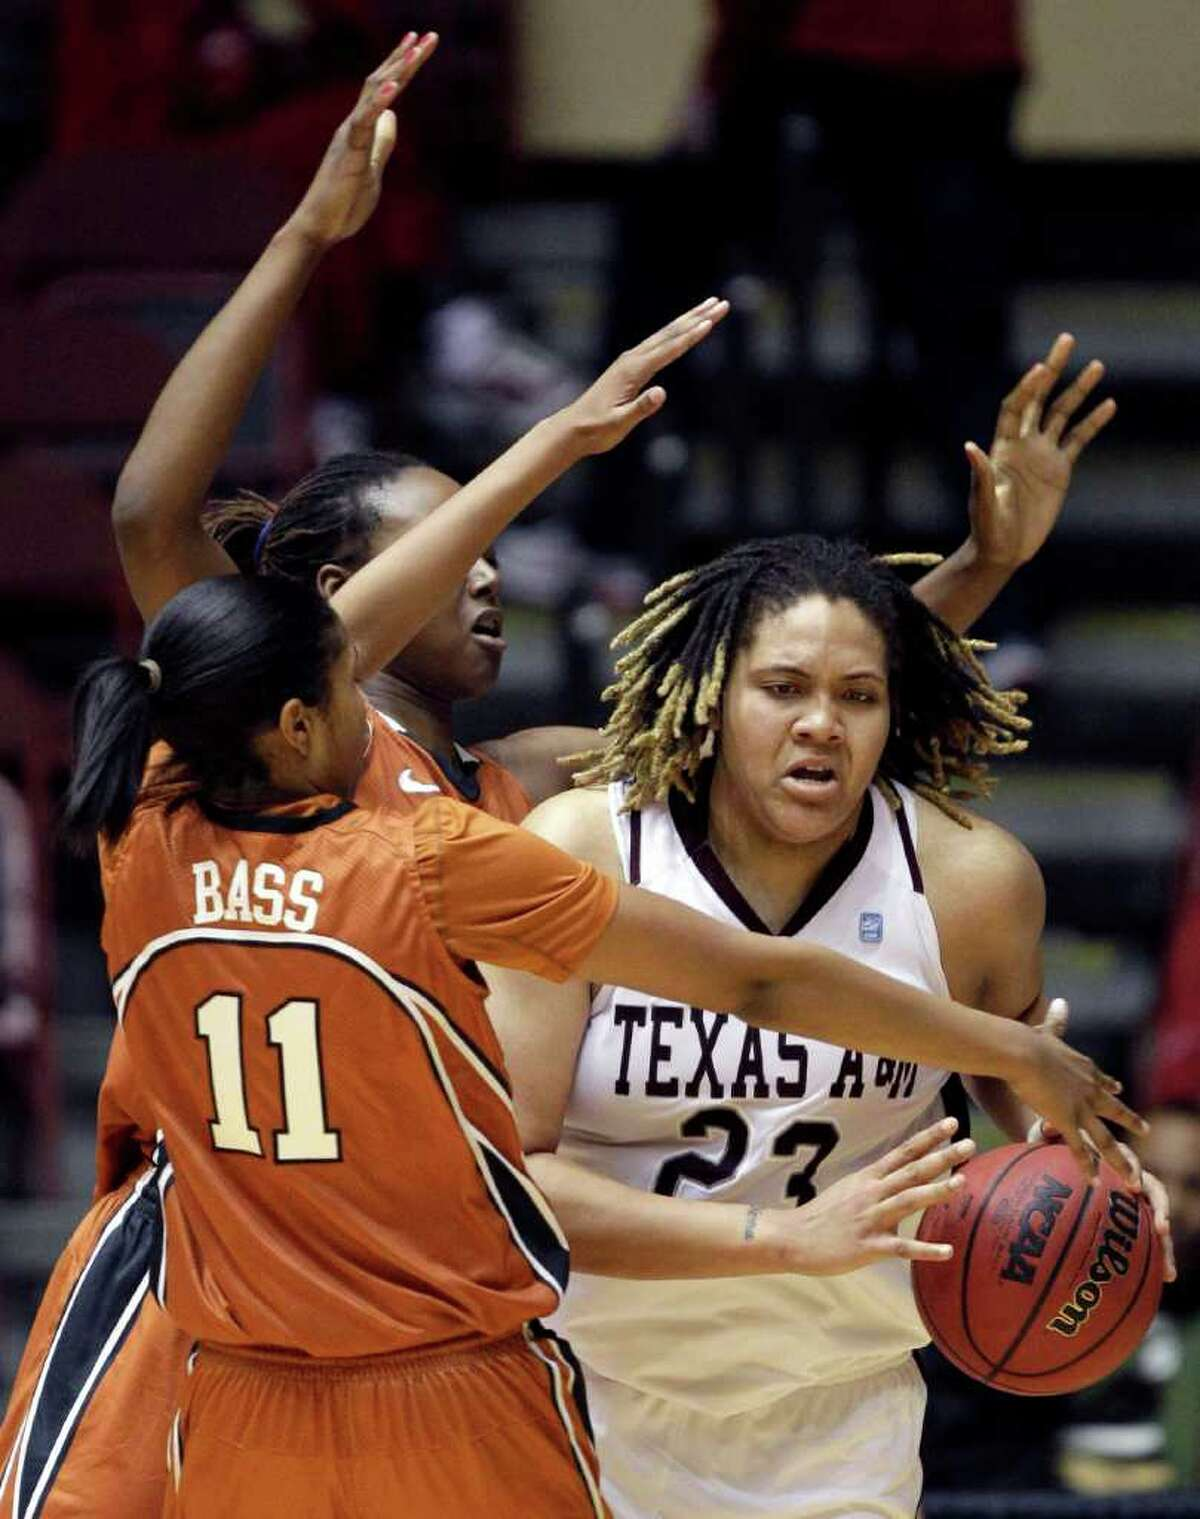 Texas A&M's Danielle Adams, right, tries to find her way around Texas' Chelsea Bass (11) and Ashley Gayle, rear, during the second half of an NCAA college basketball game at the Big 12 Conference women's tournament on Wednesday, March 9, 2011, in Kansas City, Mo. Texas A&M won 77-50.